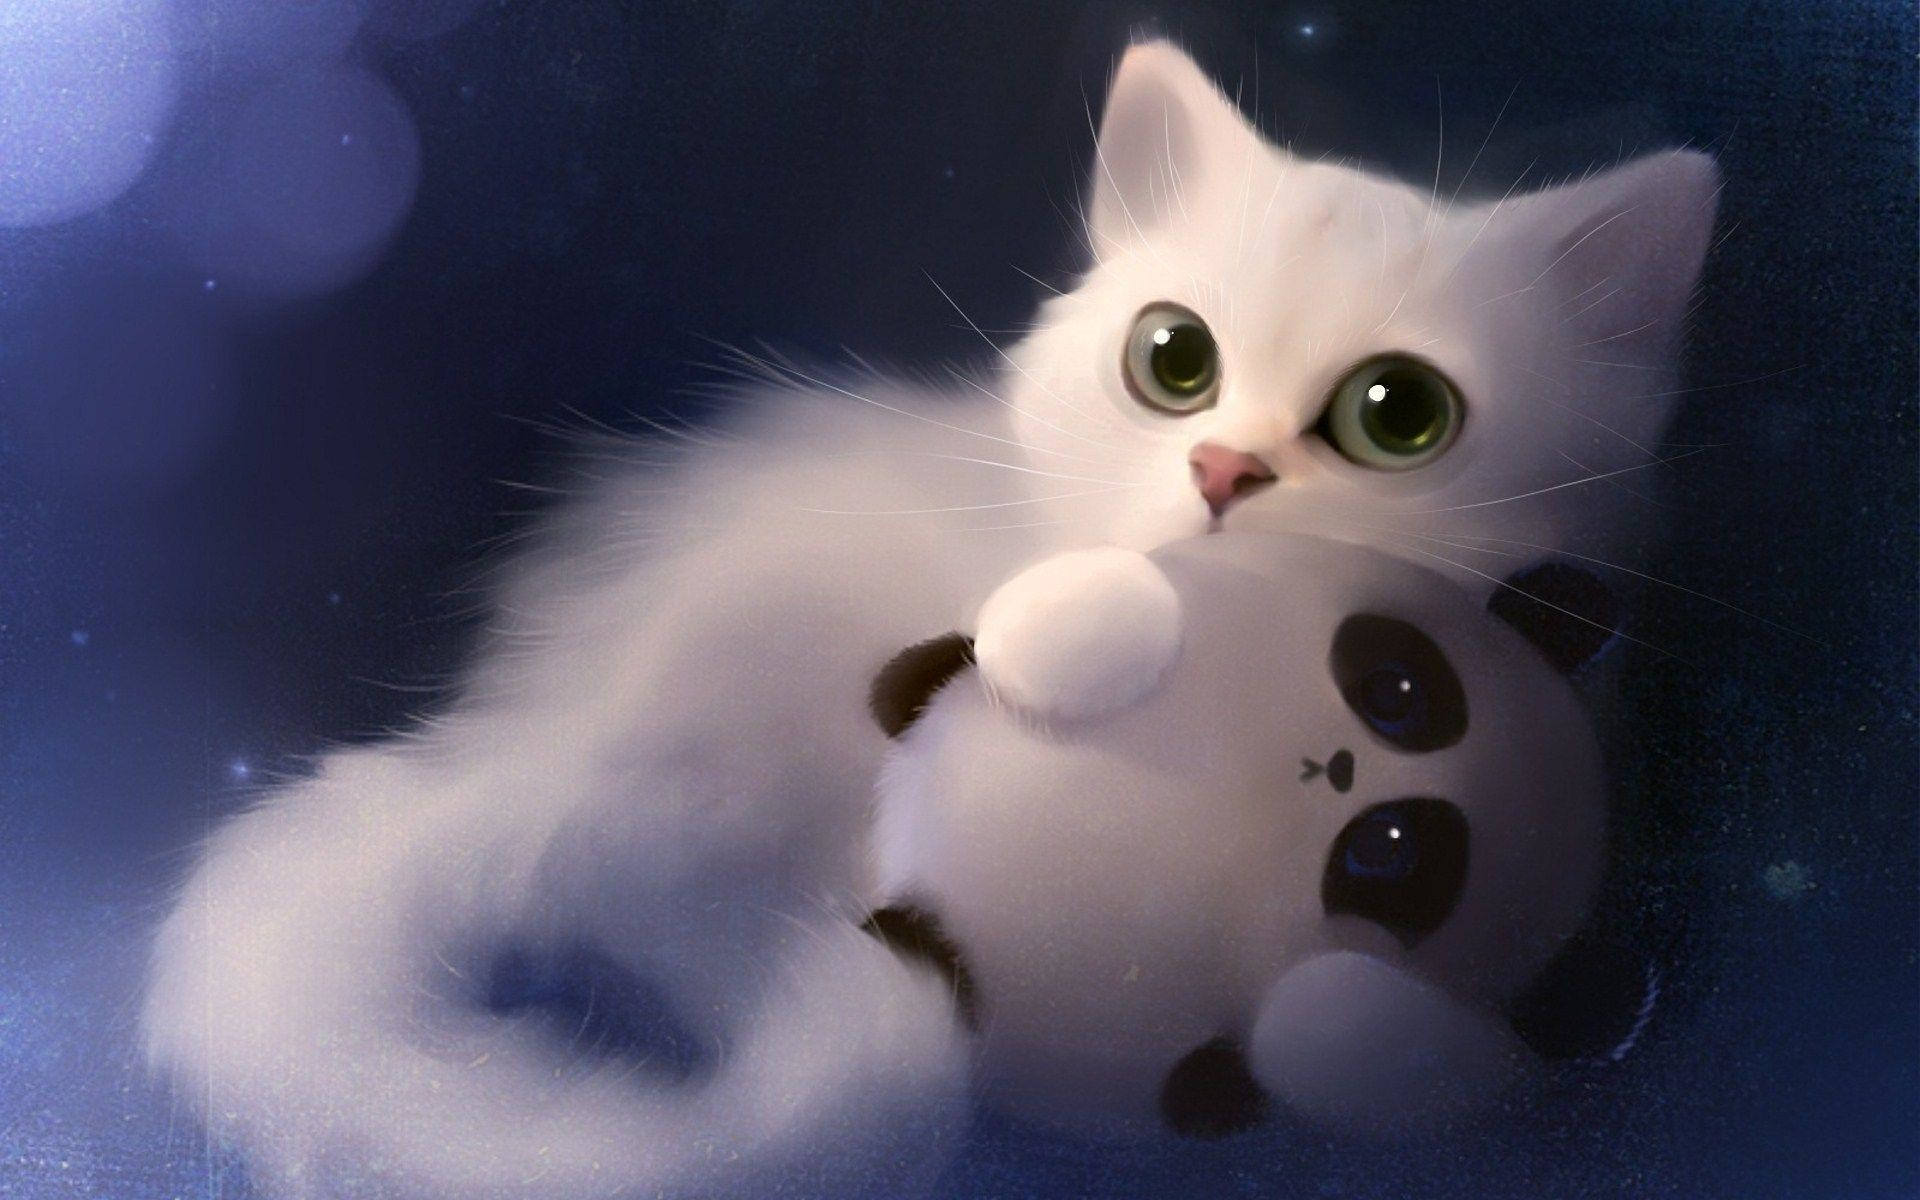 cutest wallpapers ever (56+ images)